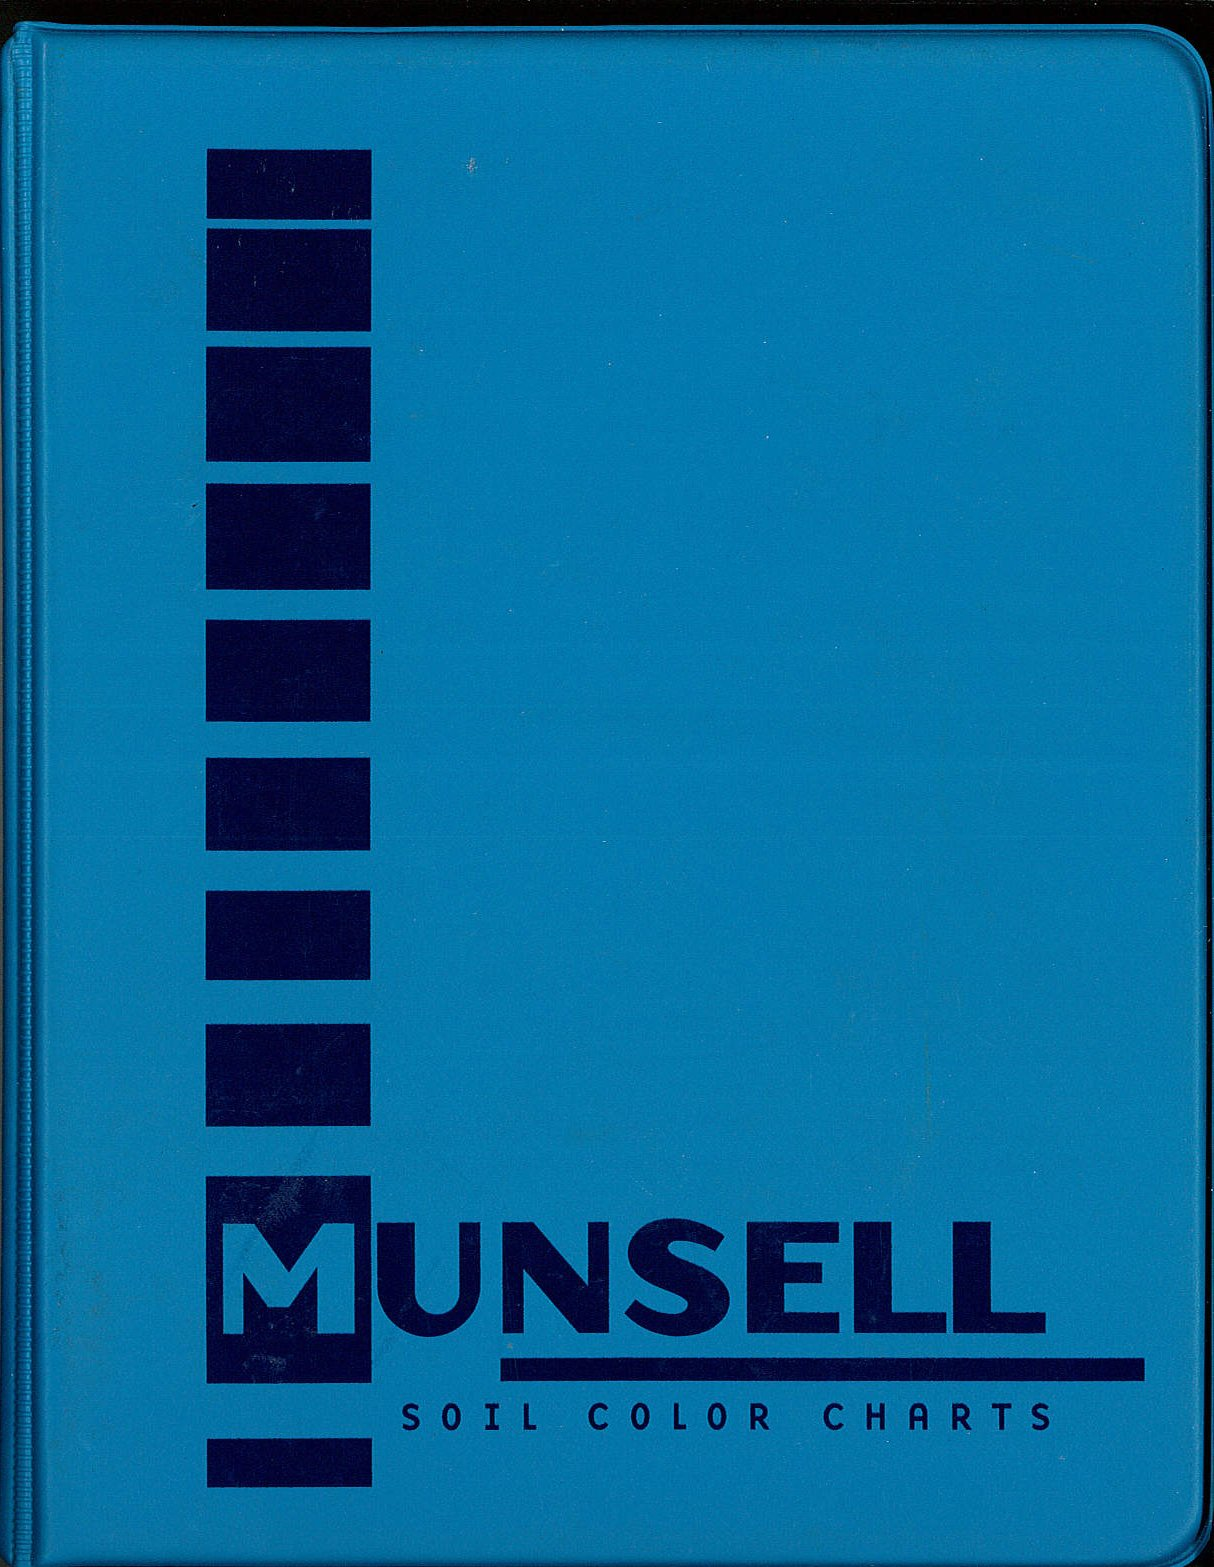 munsell soil color charts year 2000 revised washable edition munsell color company x rite amazoncom books - Munsell Soil Color Book